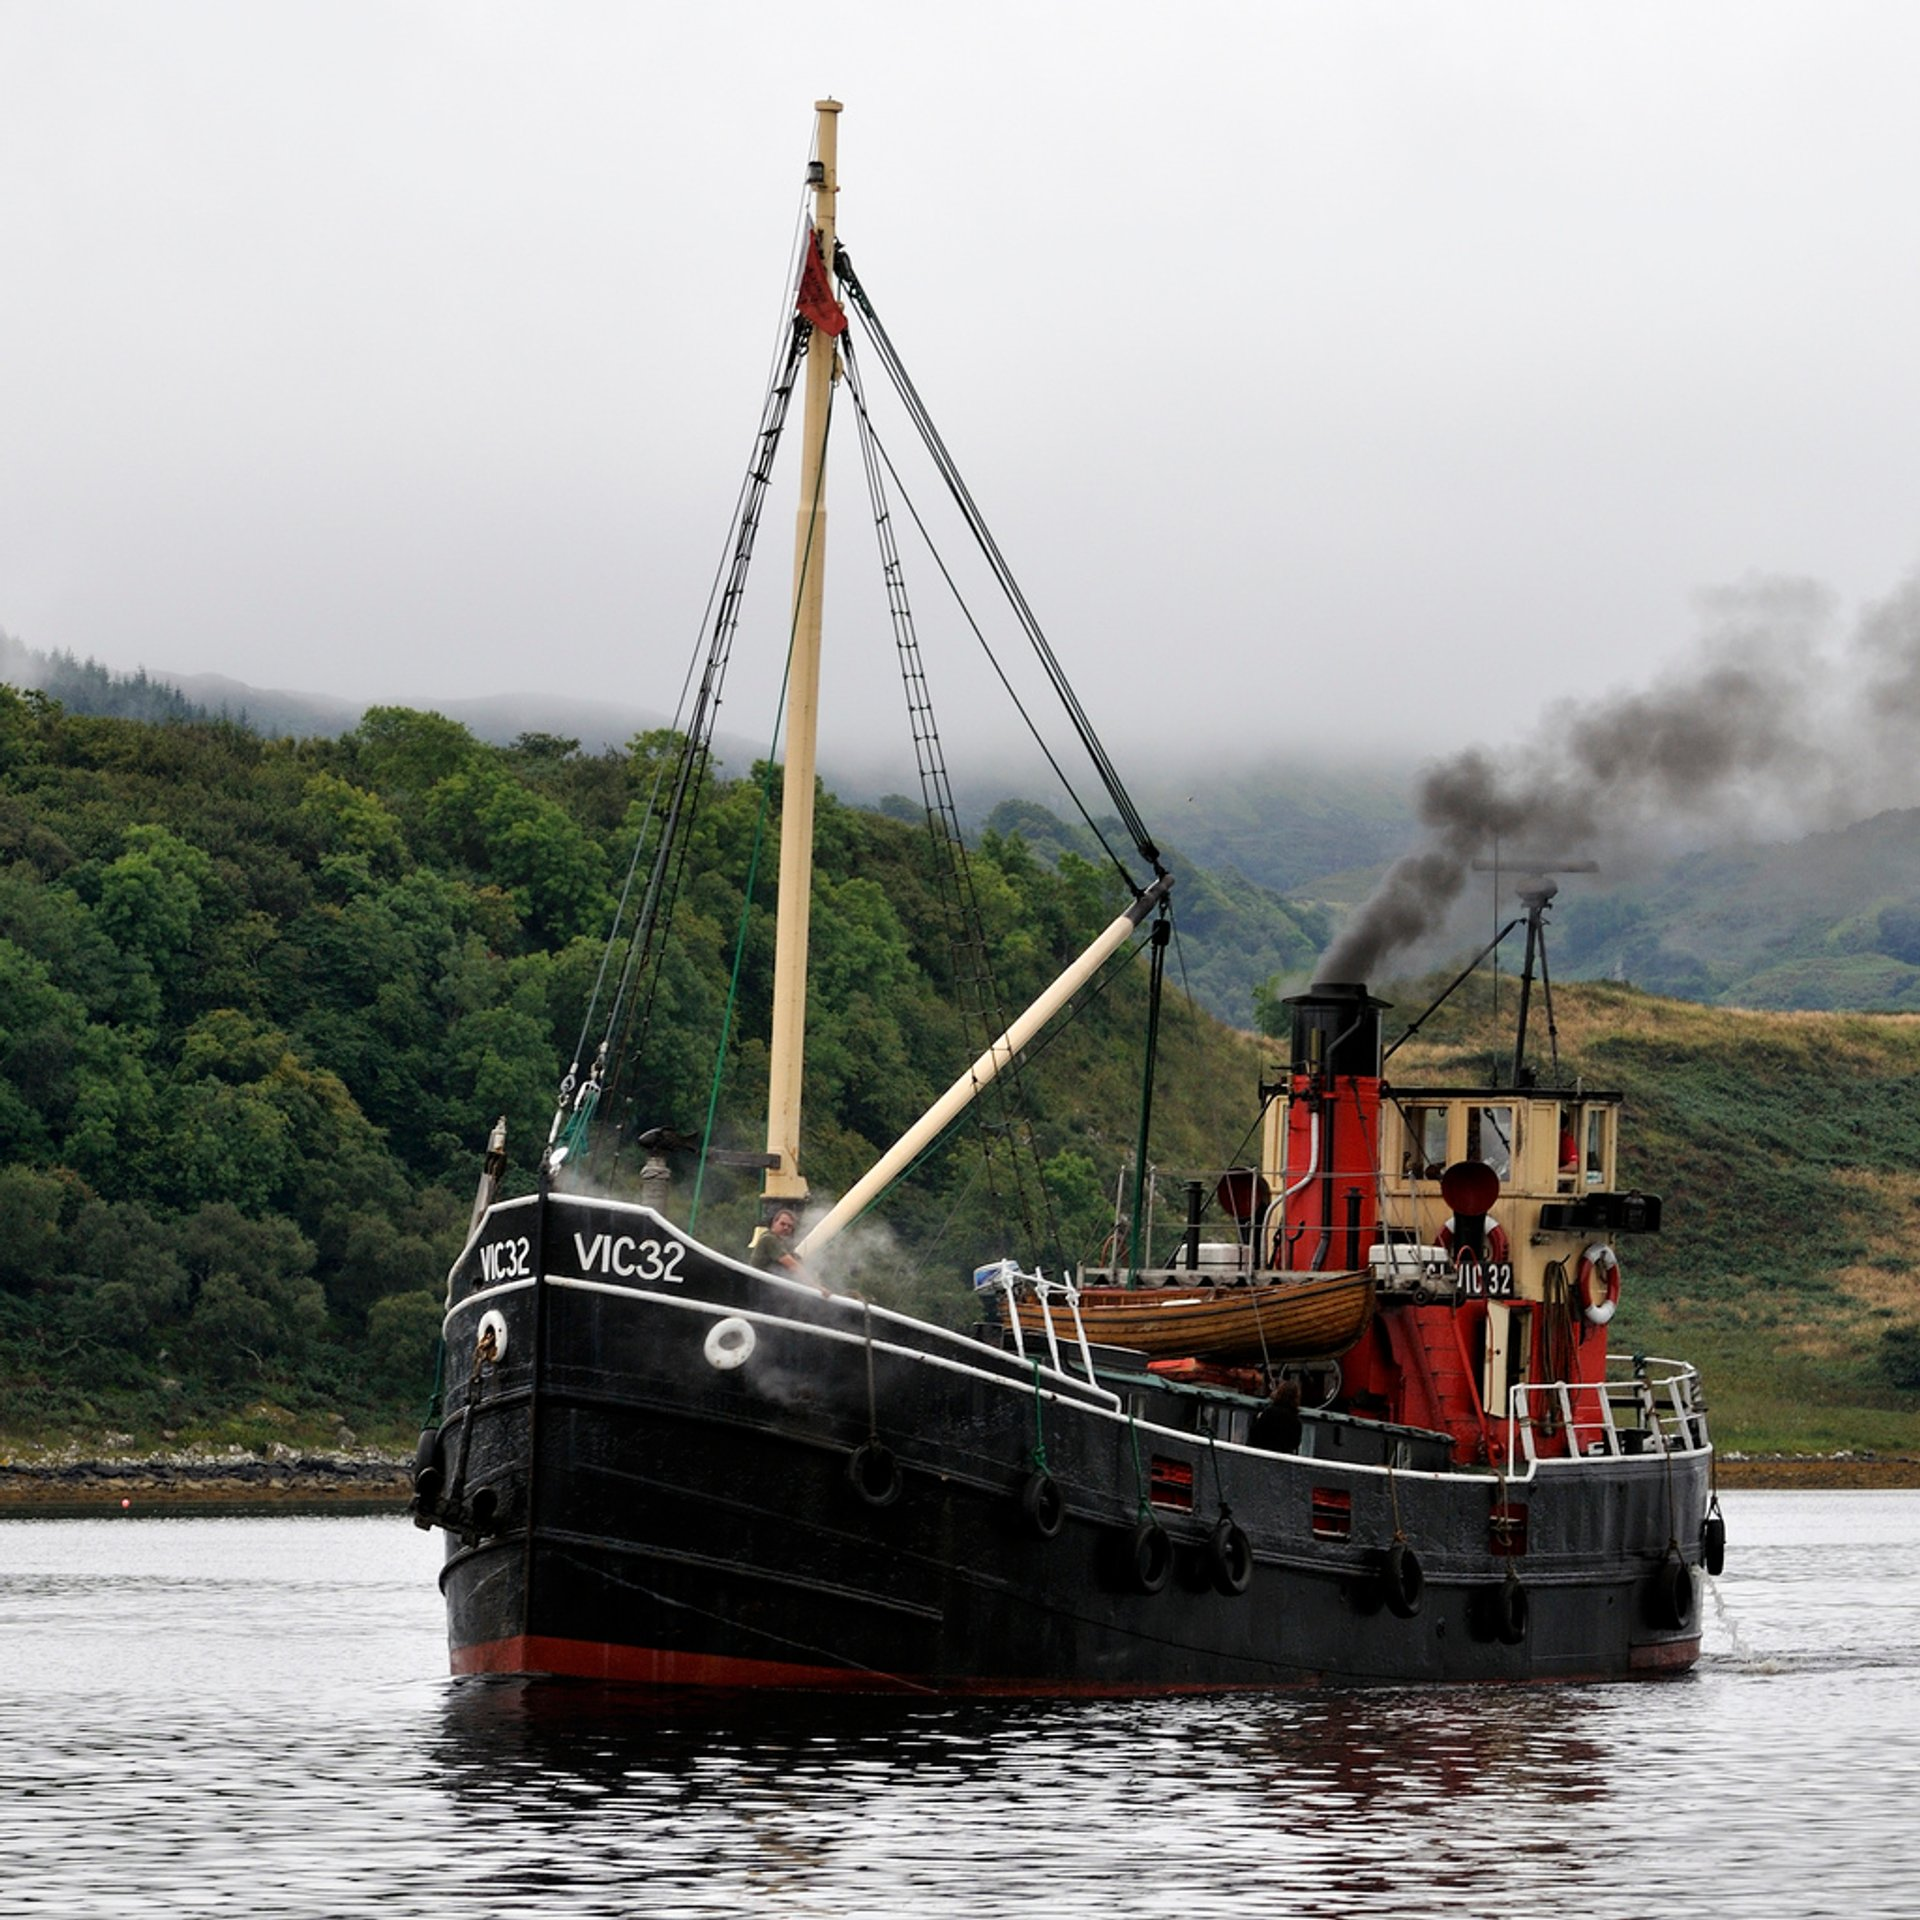 Cruising on a Vintage Steam Boat in Scotland 2020 - Best Time